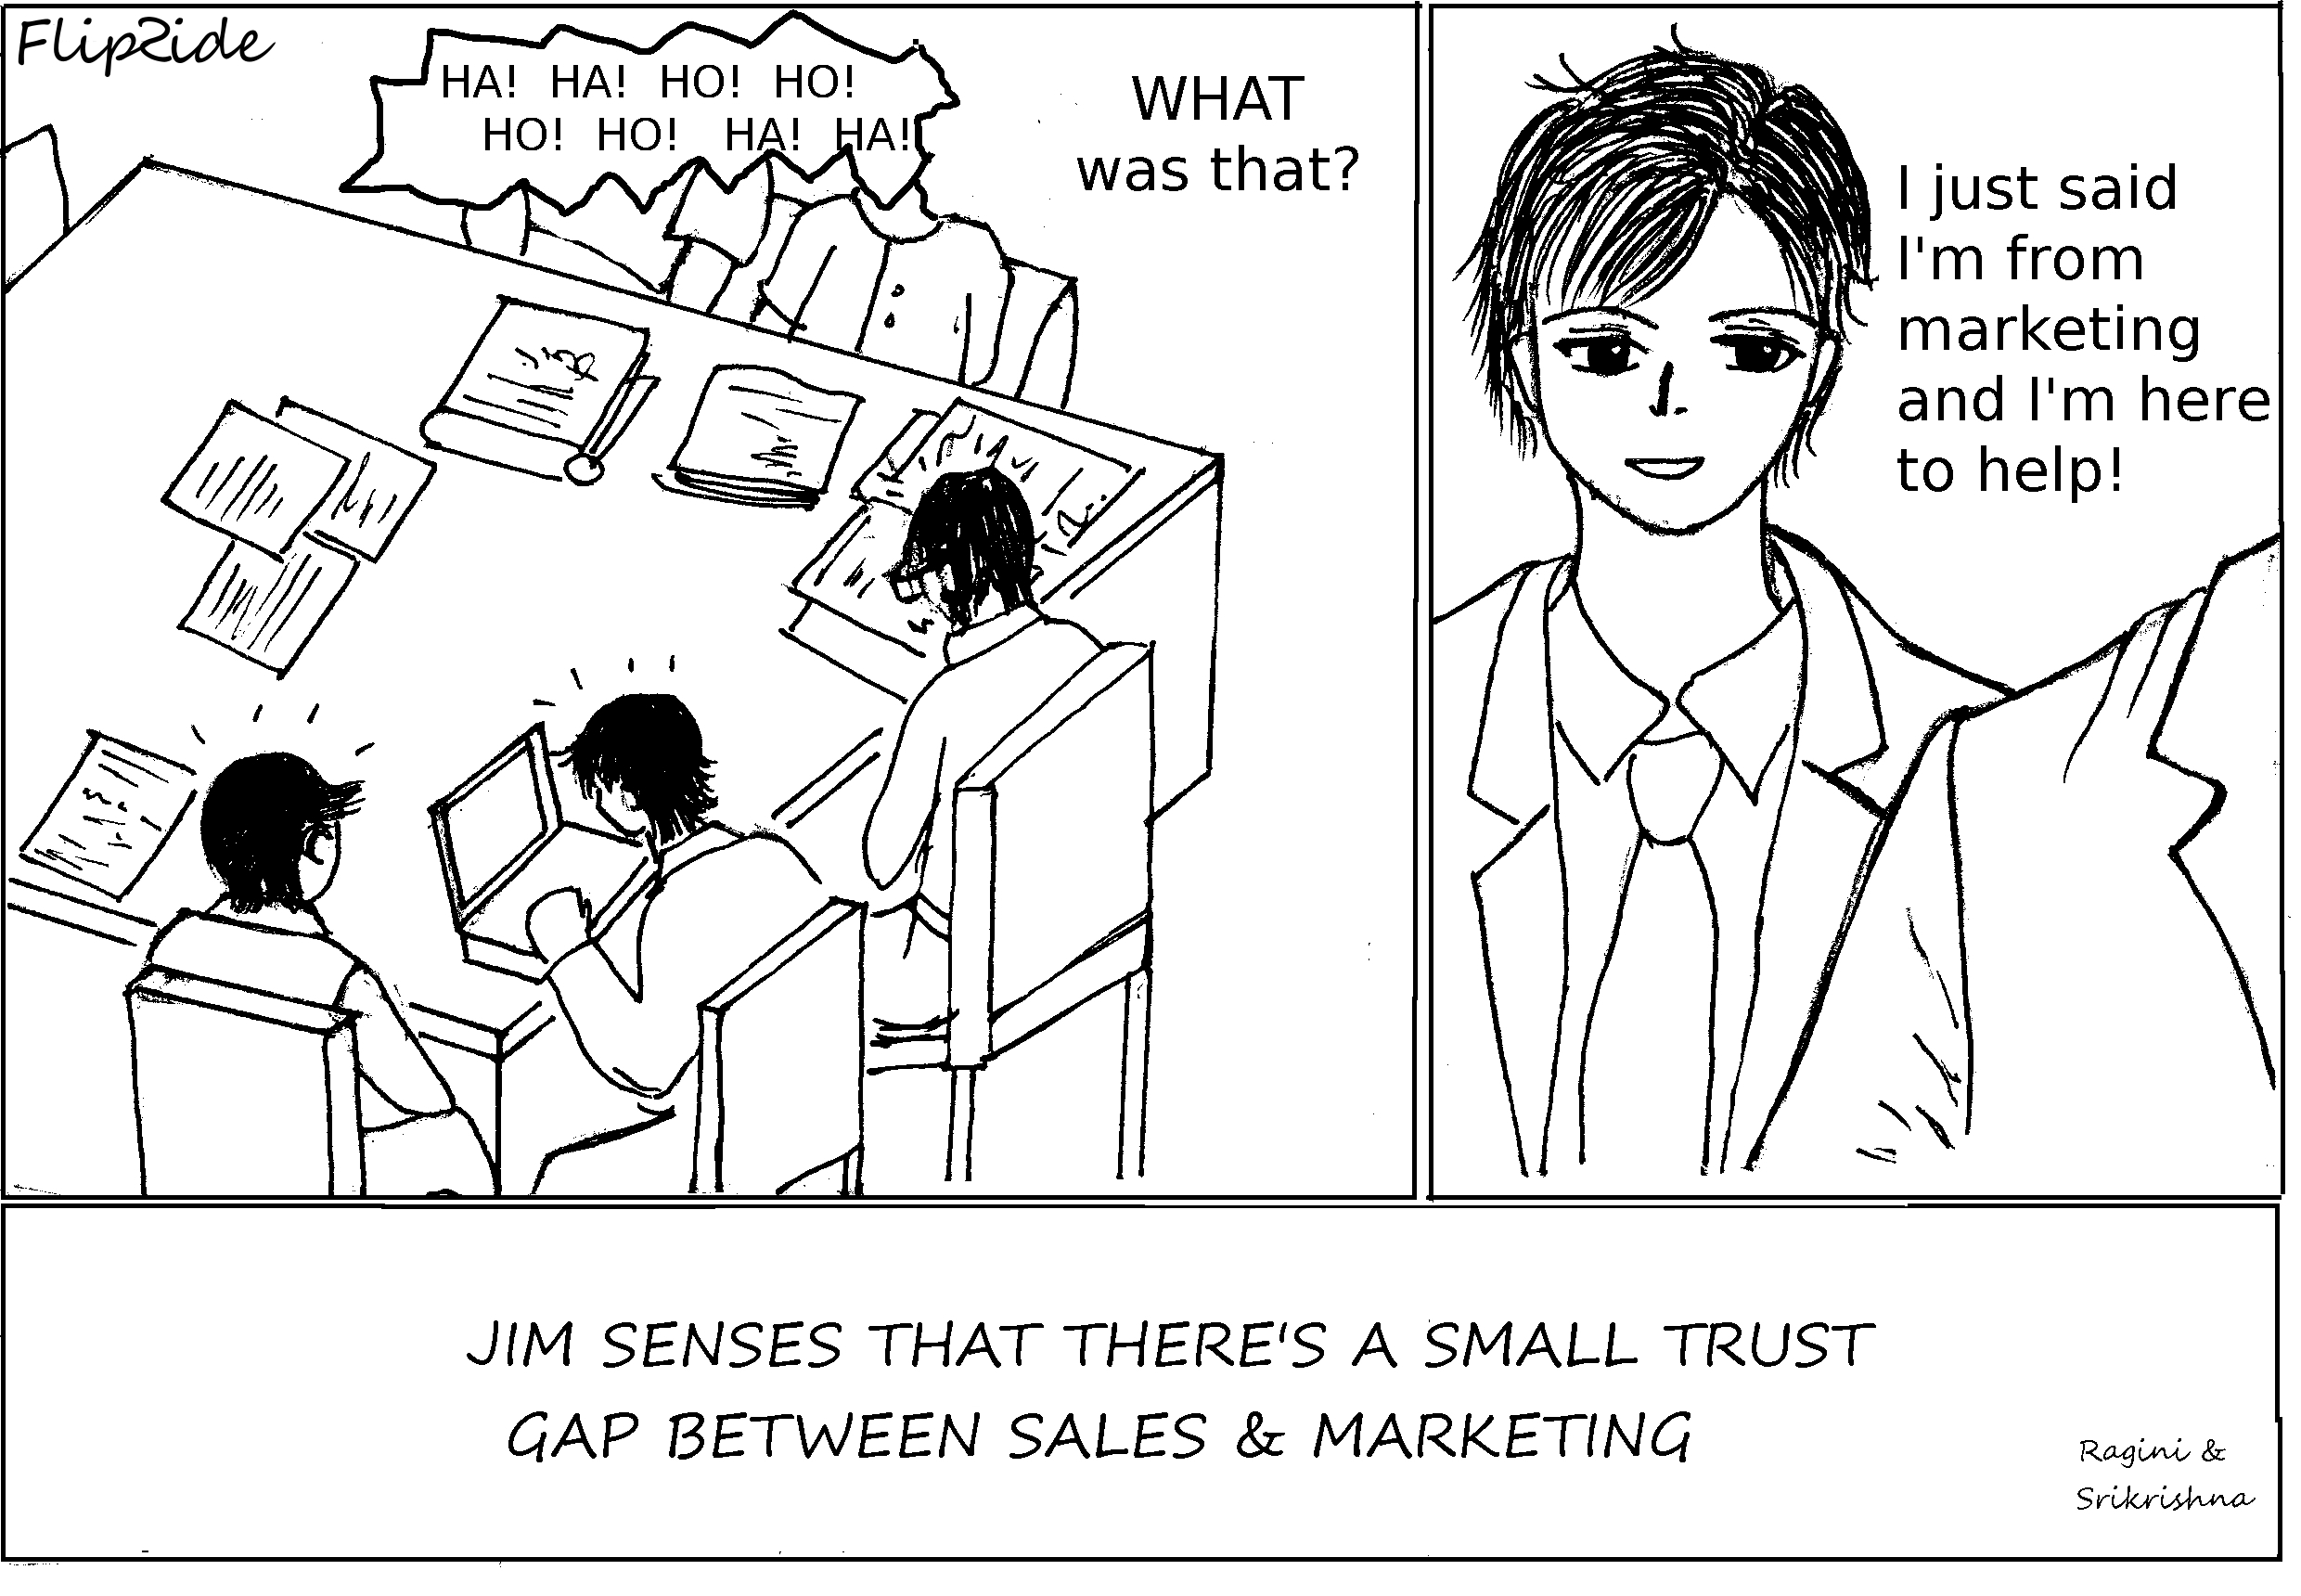 Who does marketing help?